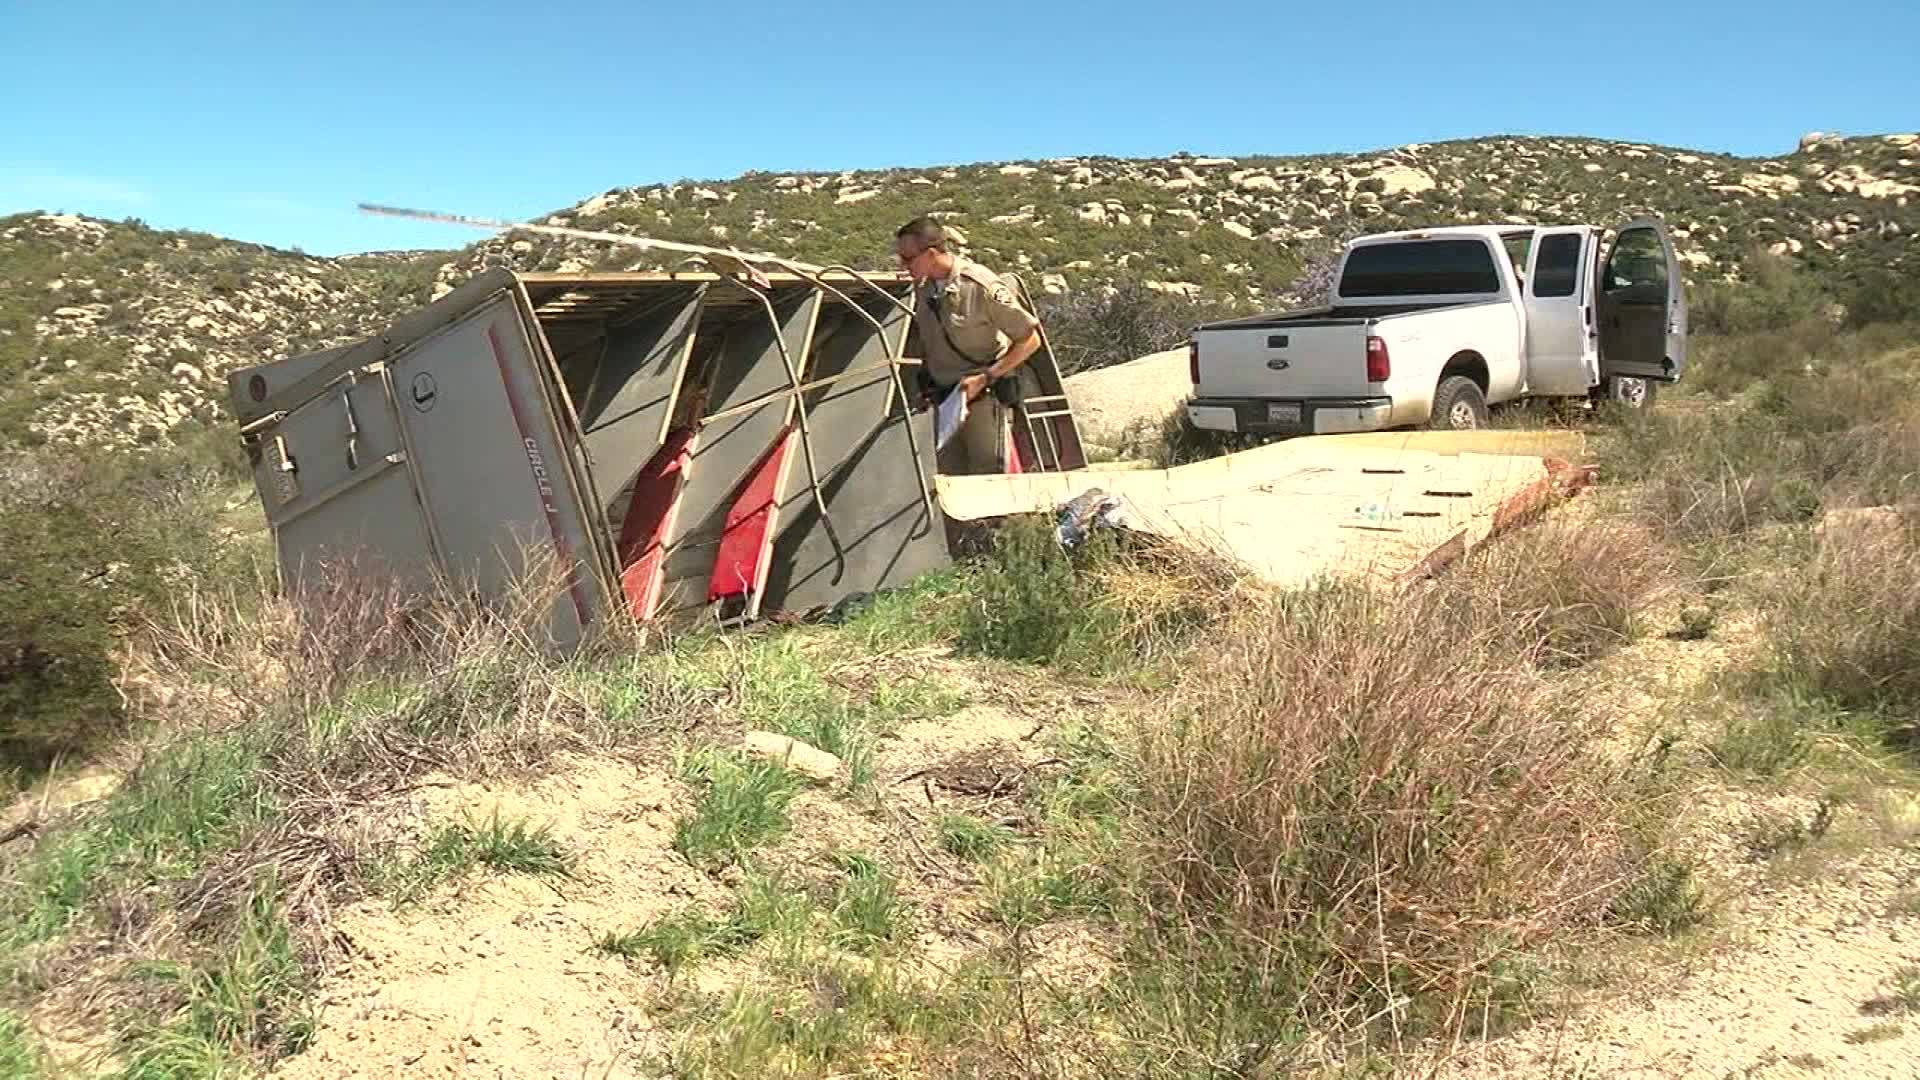 Trailer carrying undocumented immigrants flips over during human smuggling attempt